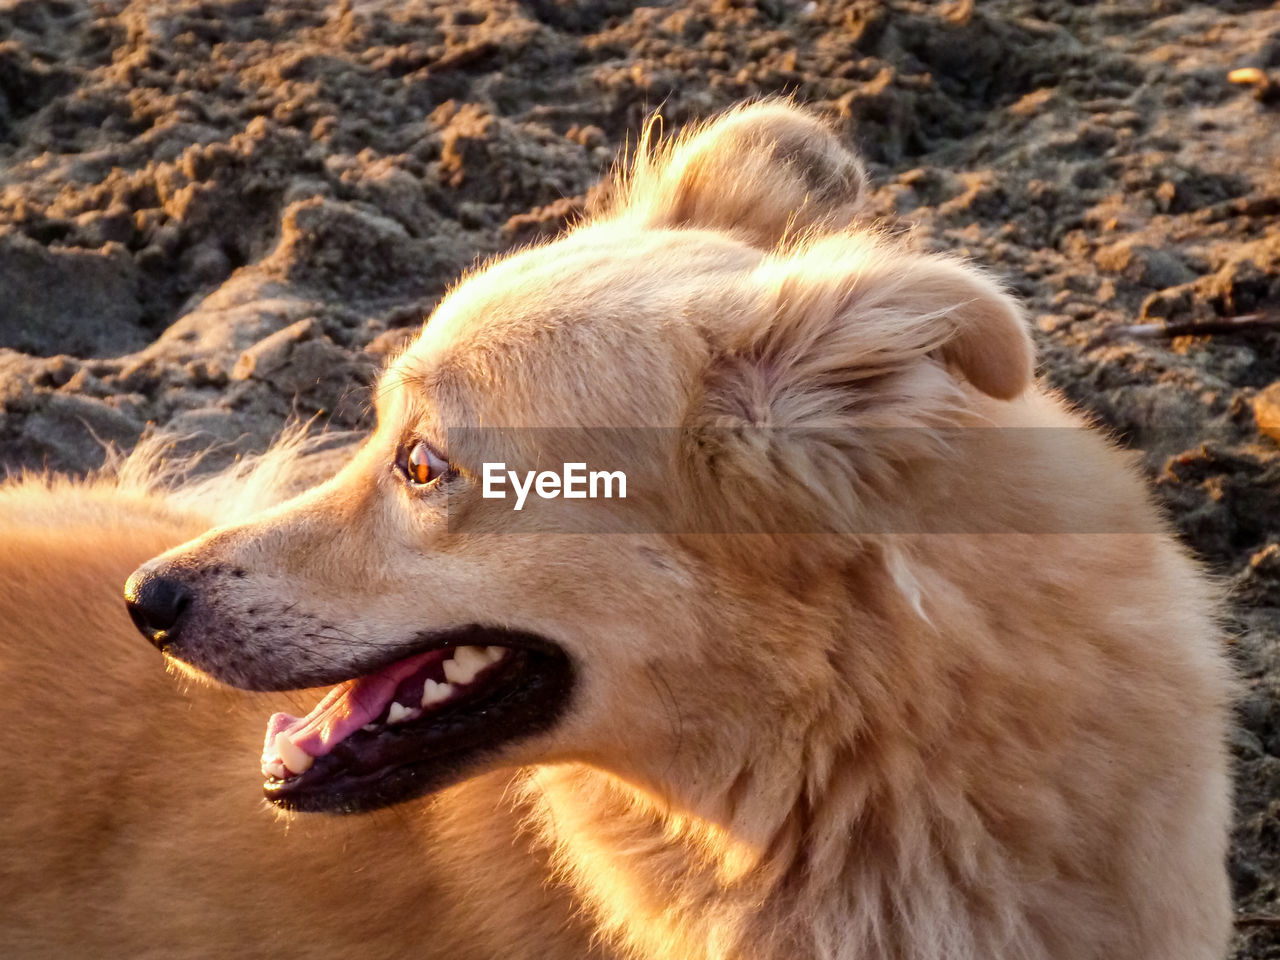 one animal, animal, dog, animal themes, mammal, canine, domestic, pets, domestic animals, vertebrate, side view, no people, animal body part, looking, mouth open, mouth, close-up, animal head, looking away, focus on foreground, profile view, animal mouth